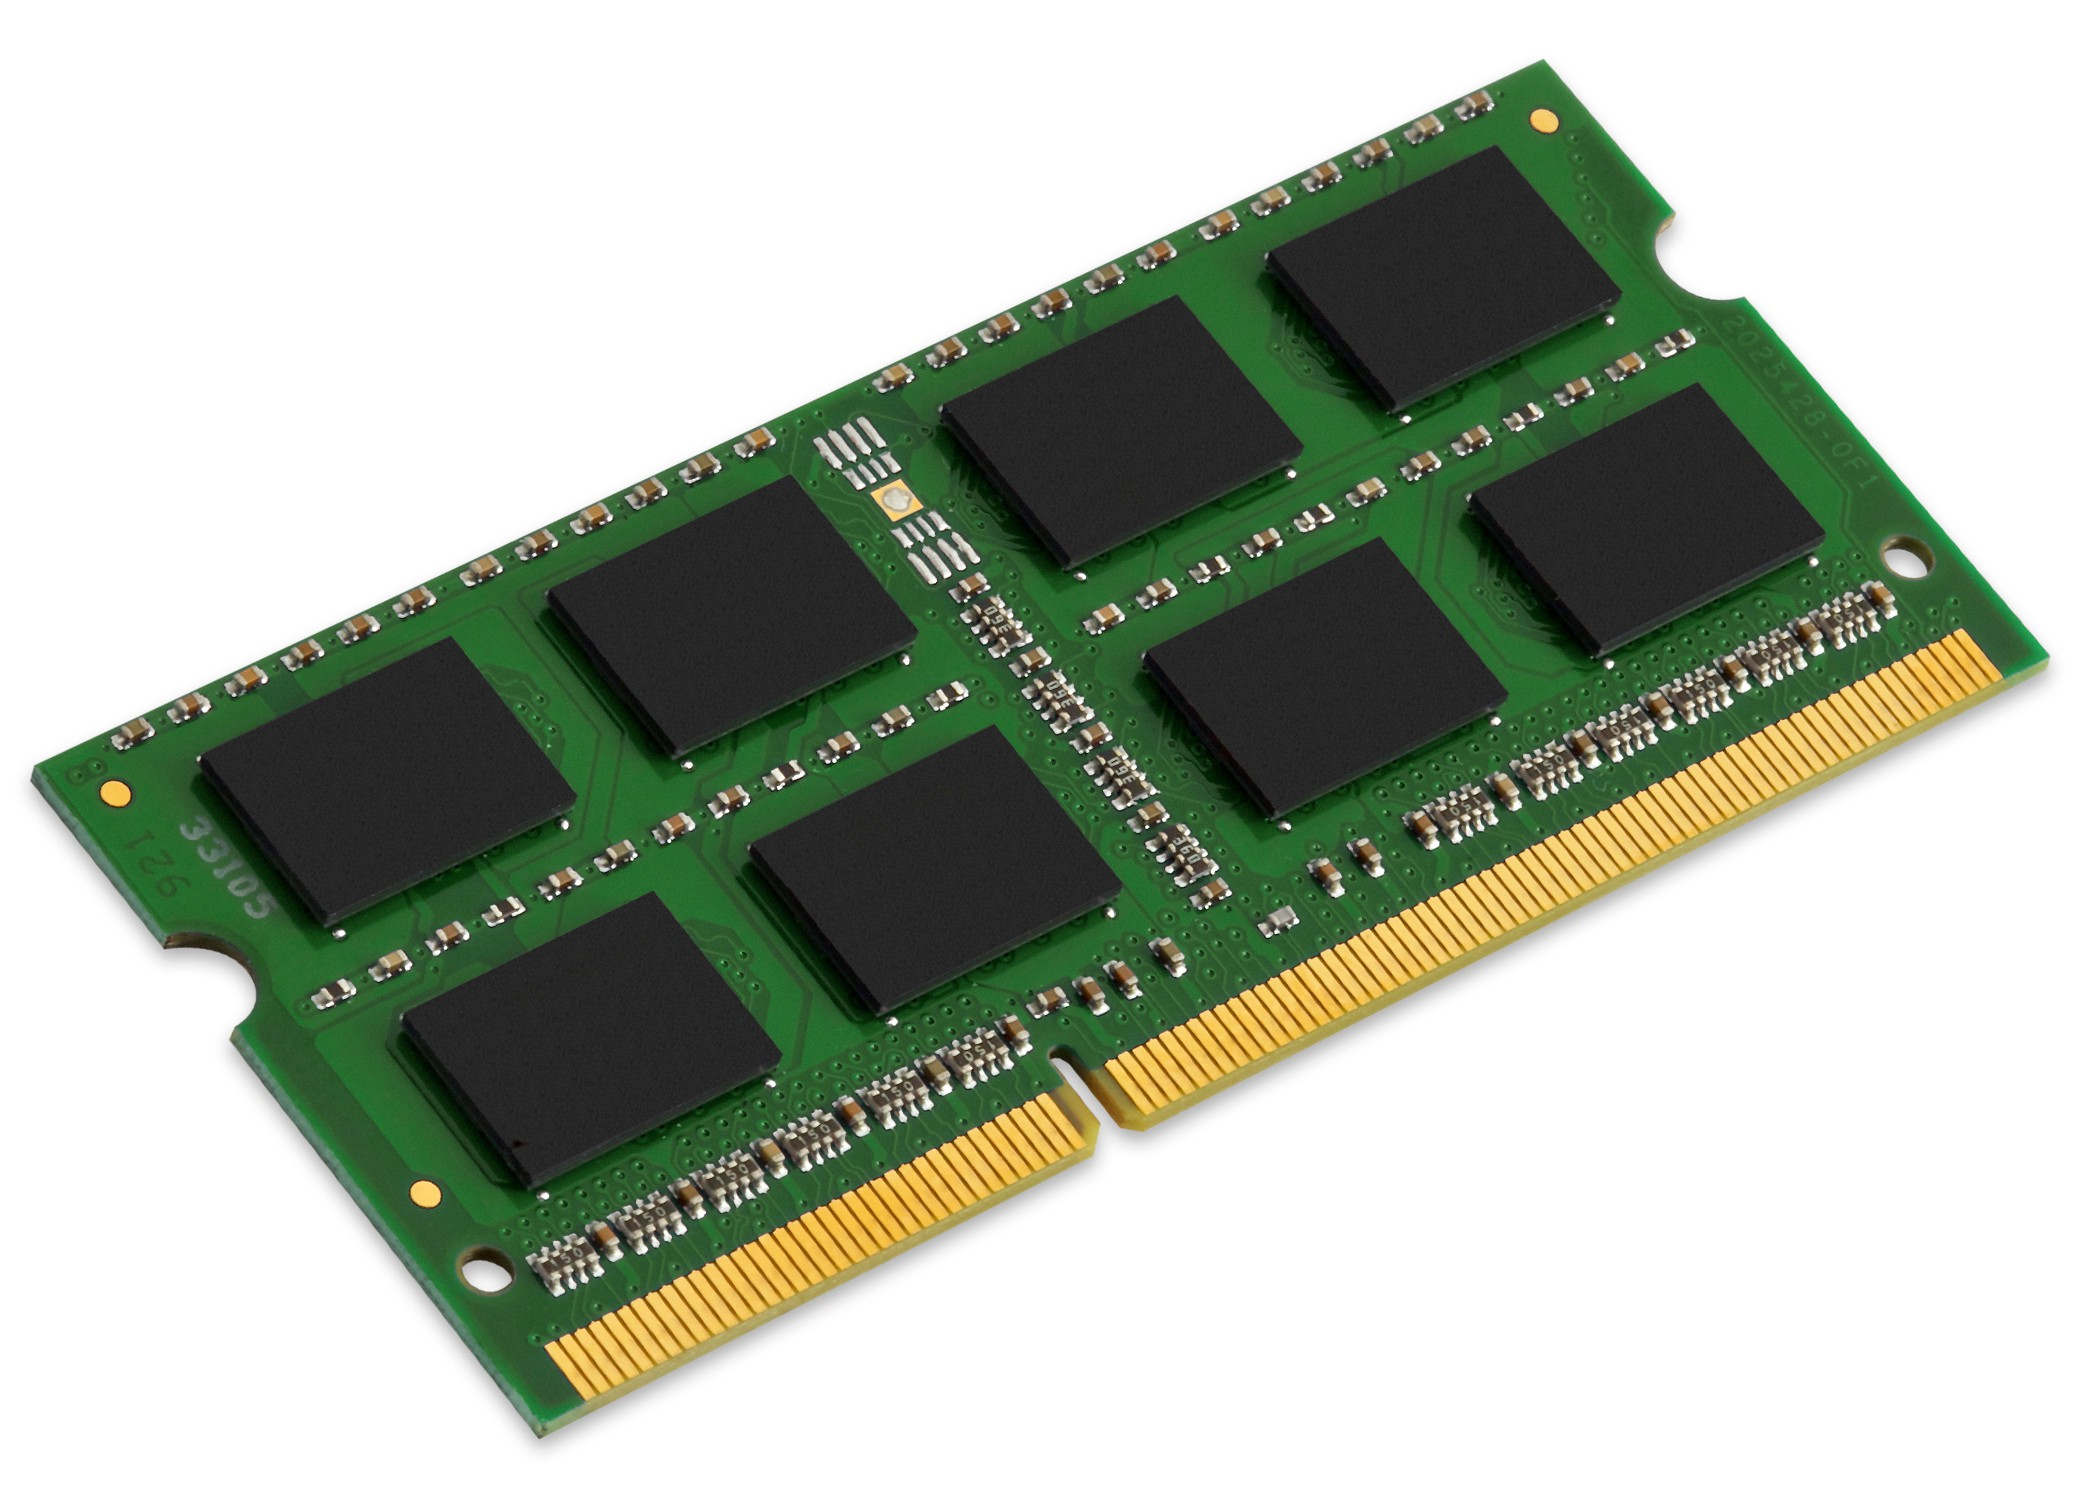 MEMORIA SODIMM DDR3 8GB PC3-12800 1600MHZ KINGSTON CL11 1.35V  KVR16LS11/8